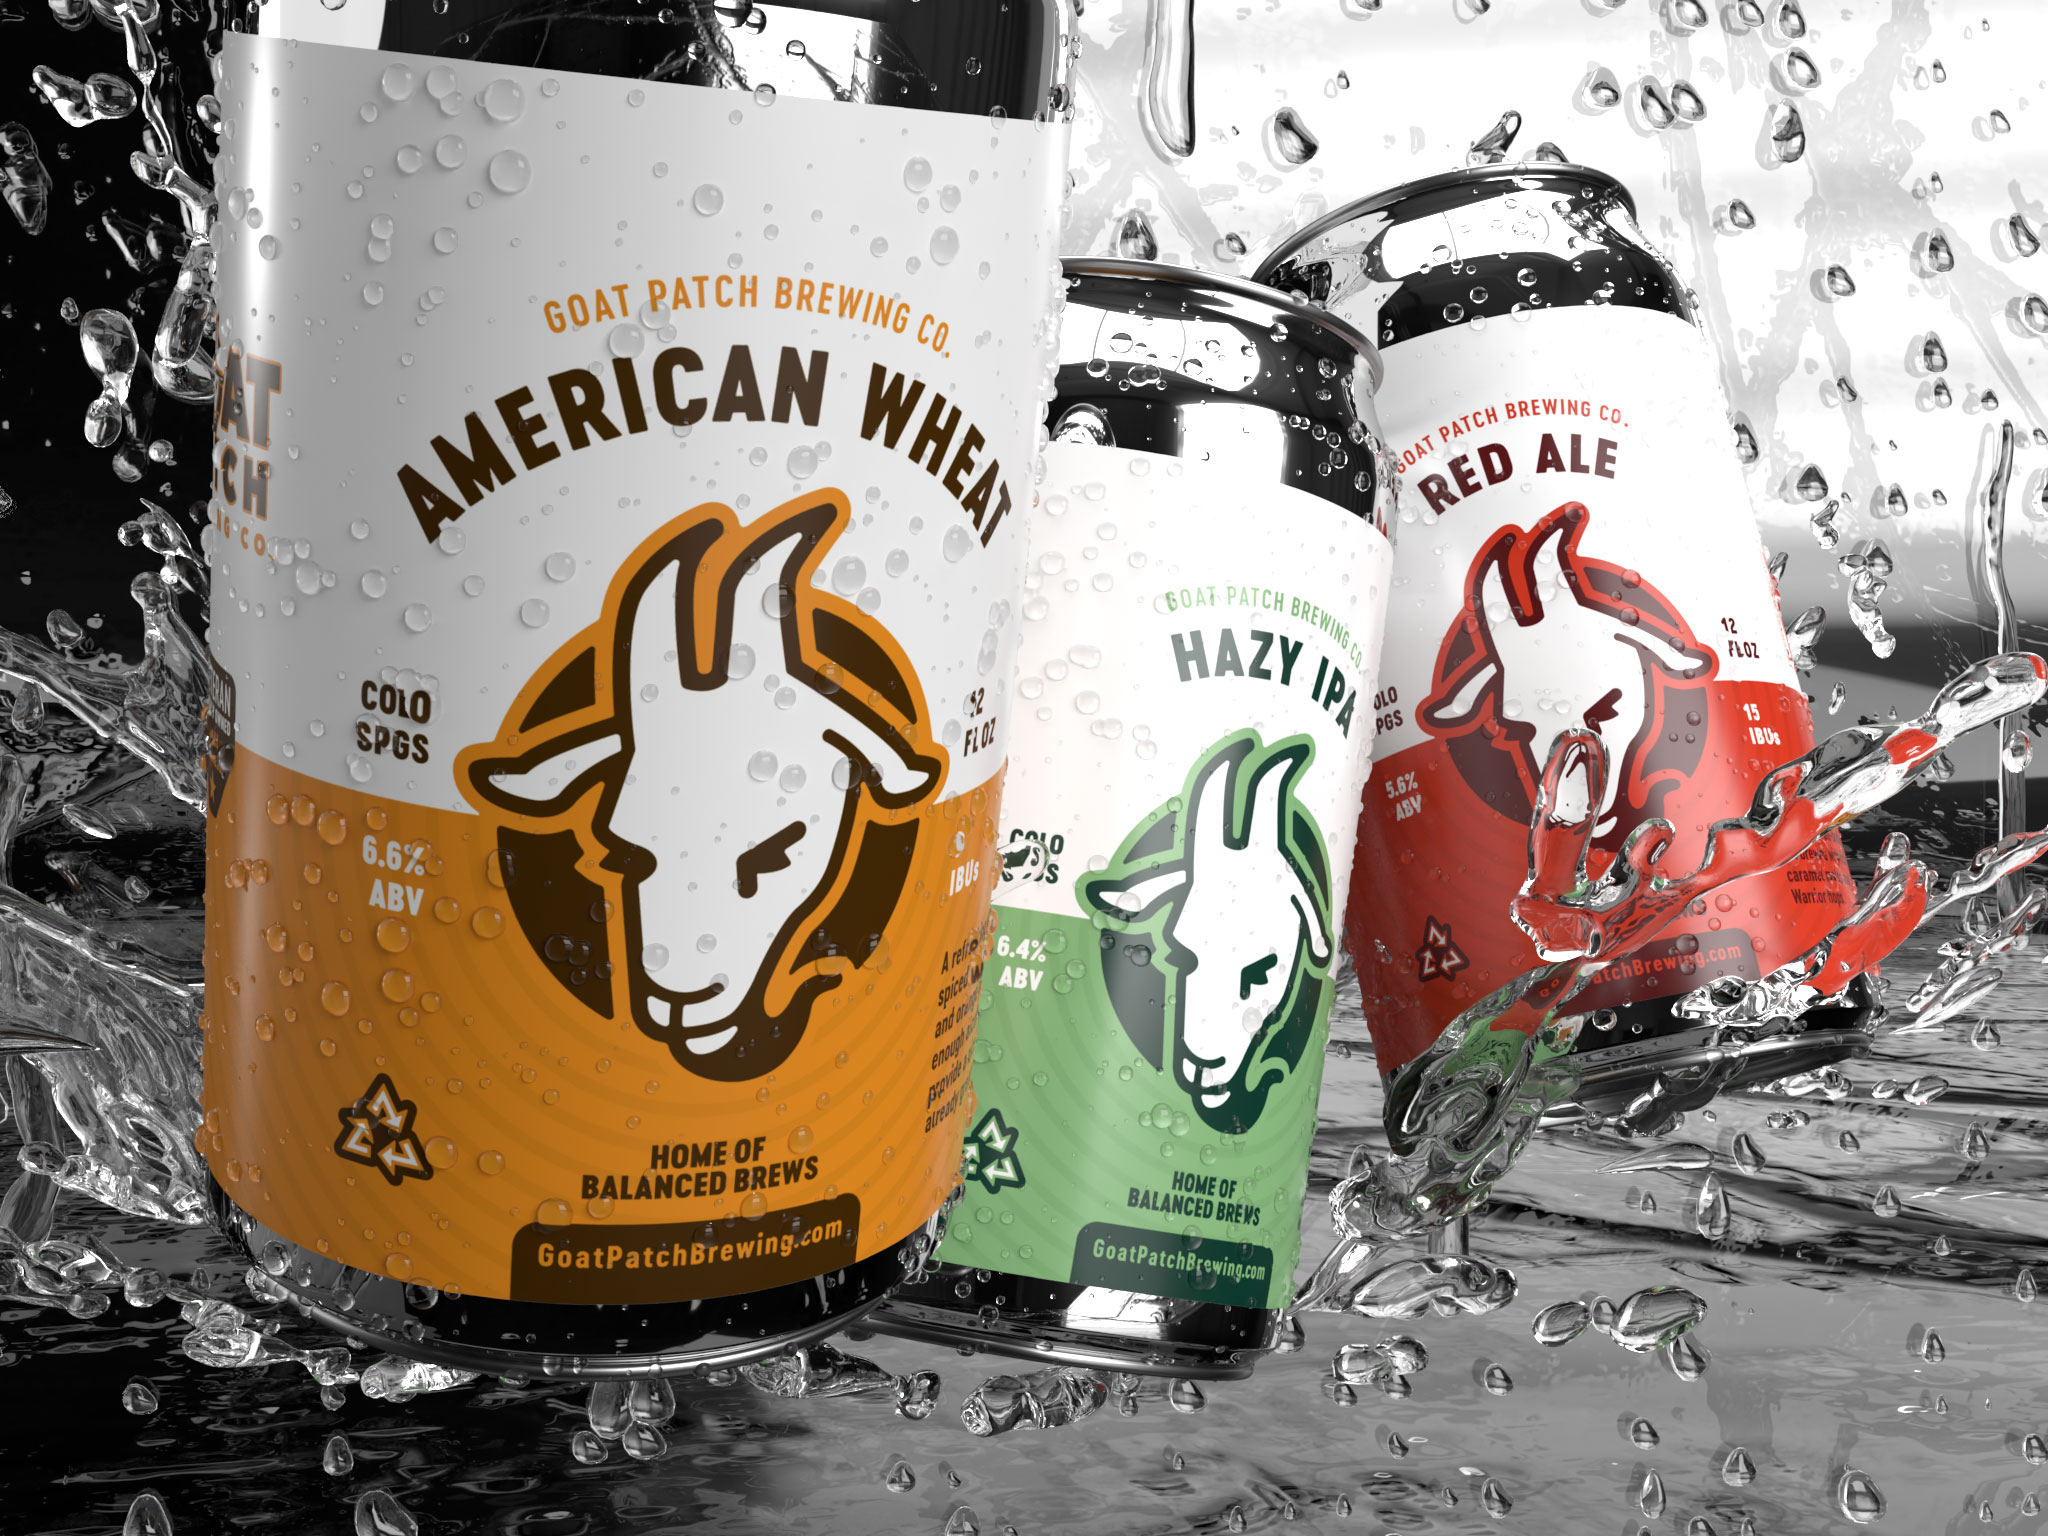 Goat-Patch-Brewing_12oz-Cans_Water-Layout-View-5